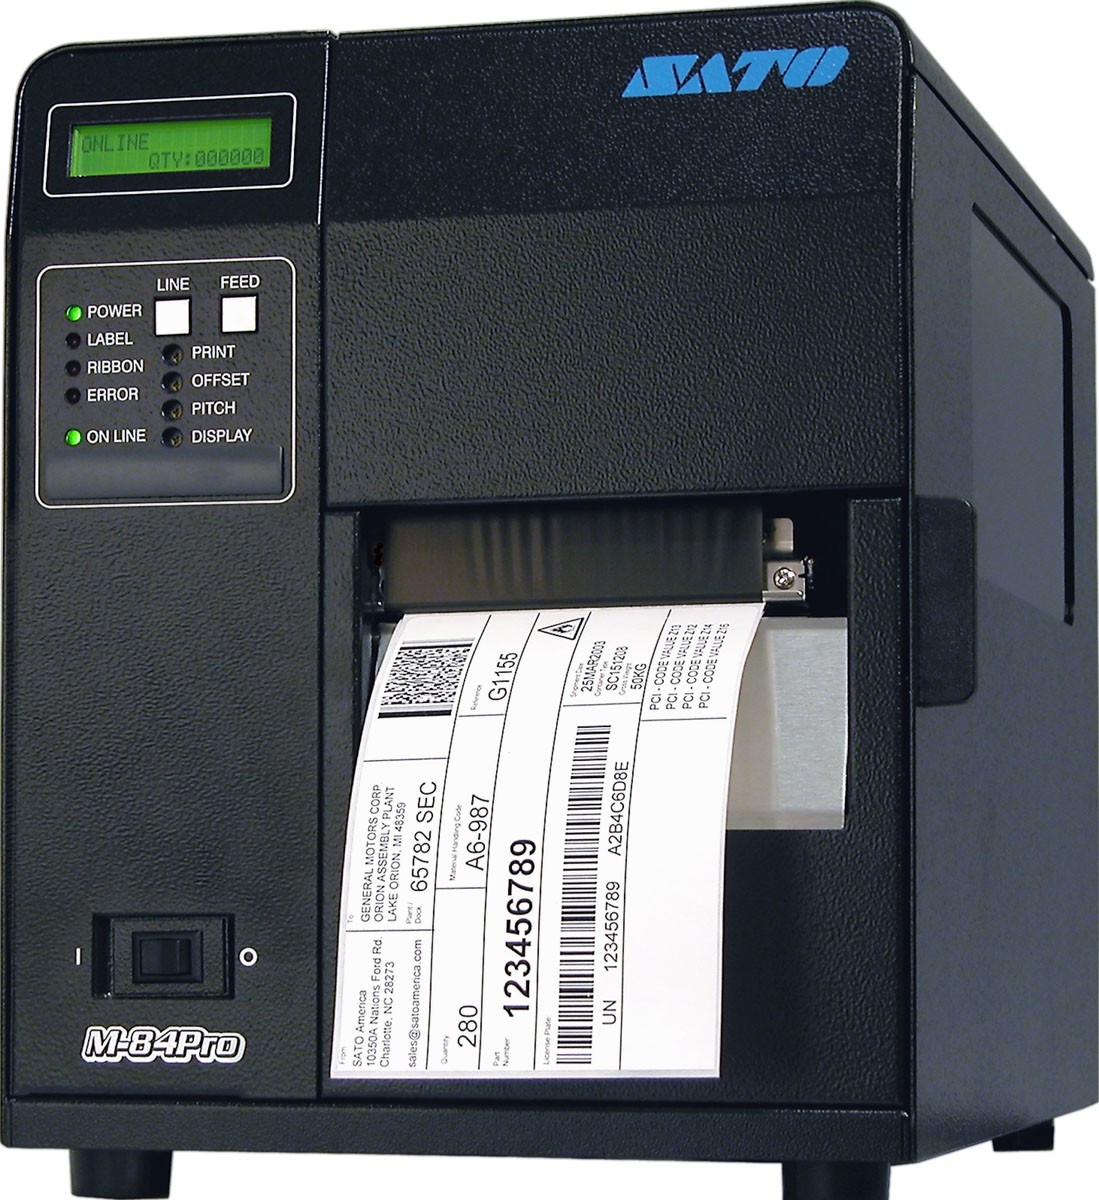 Sato M84Pro Thermal Printer